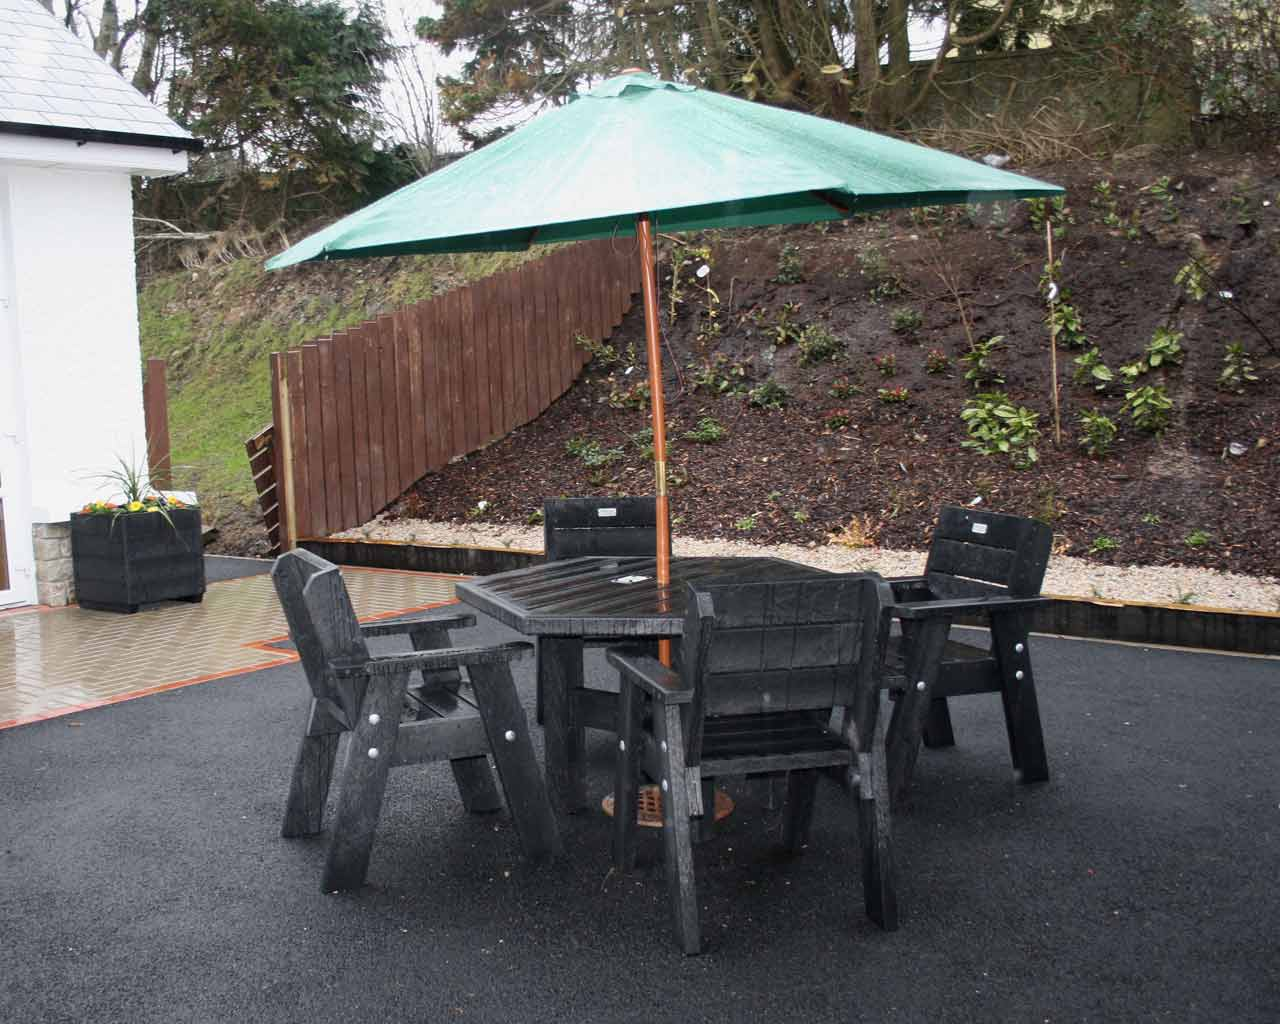 6 sided table with armchairs